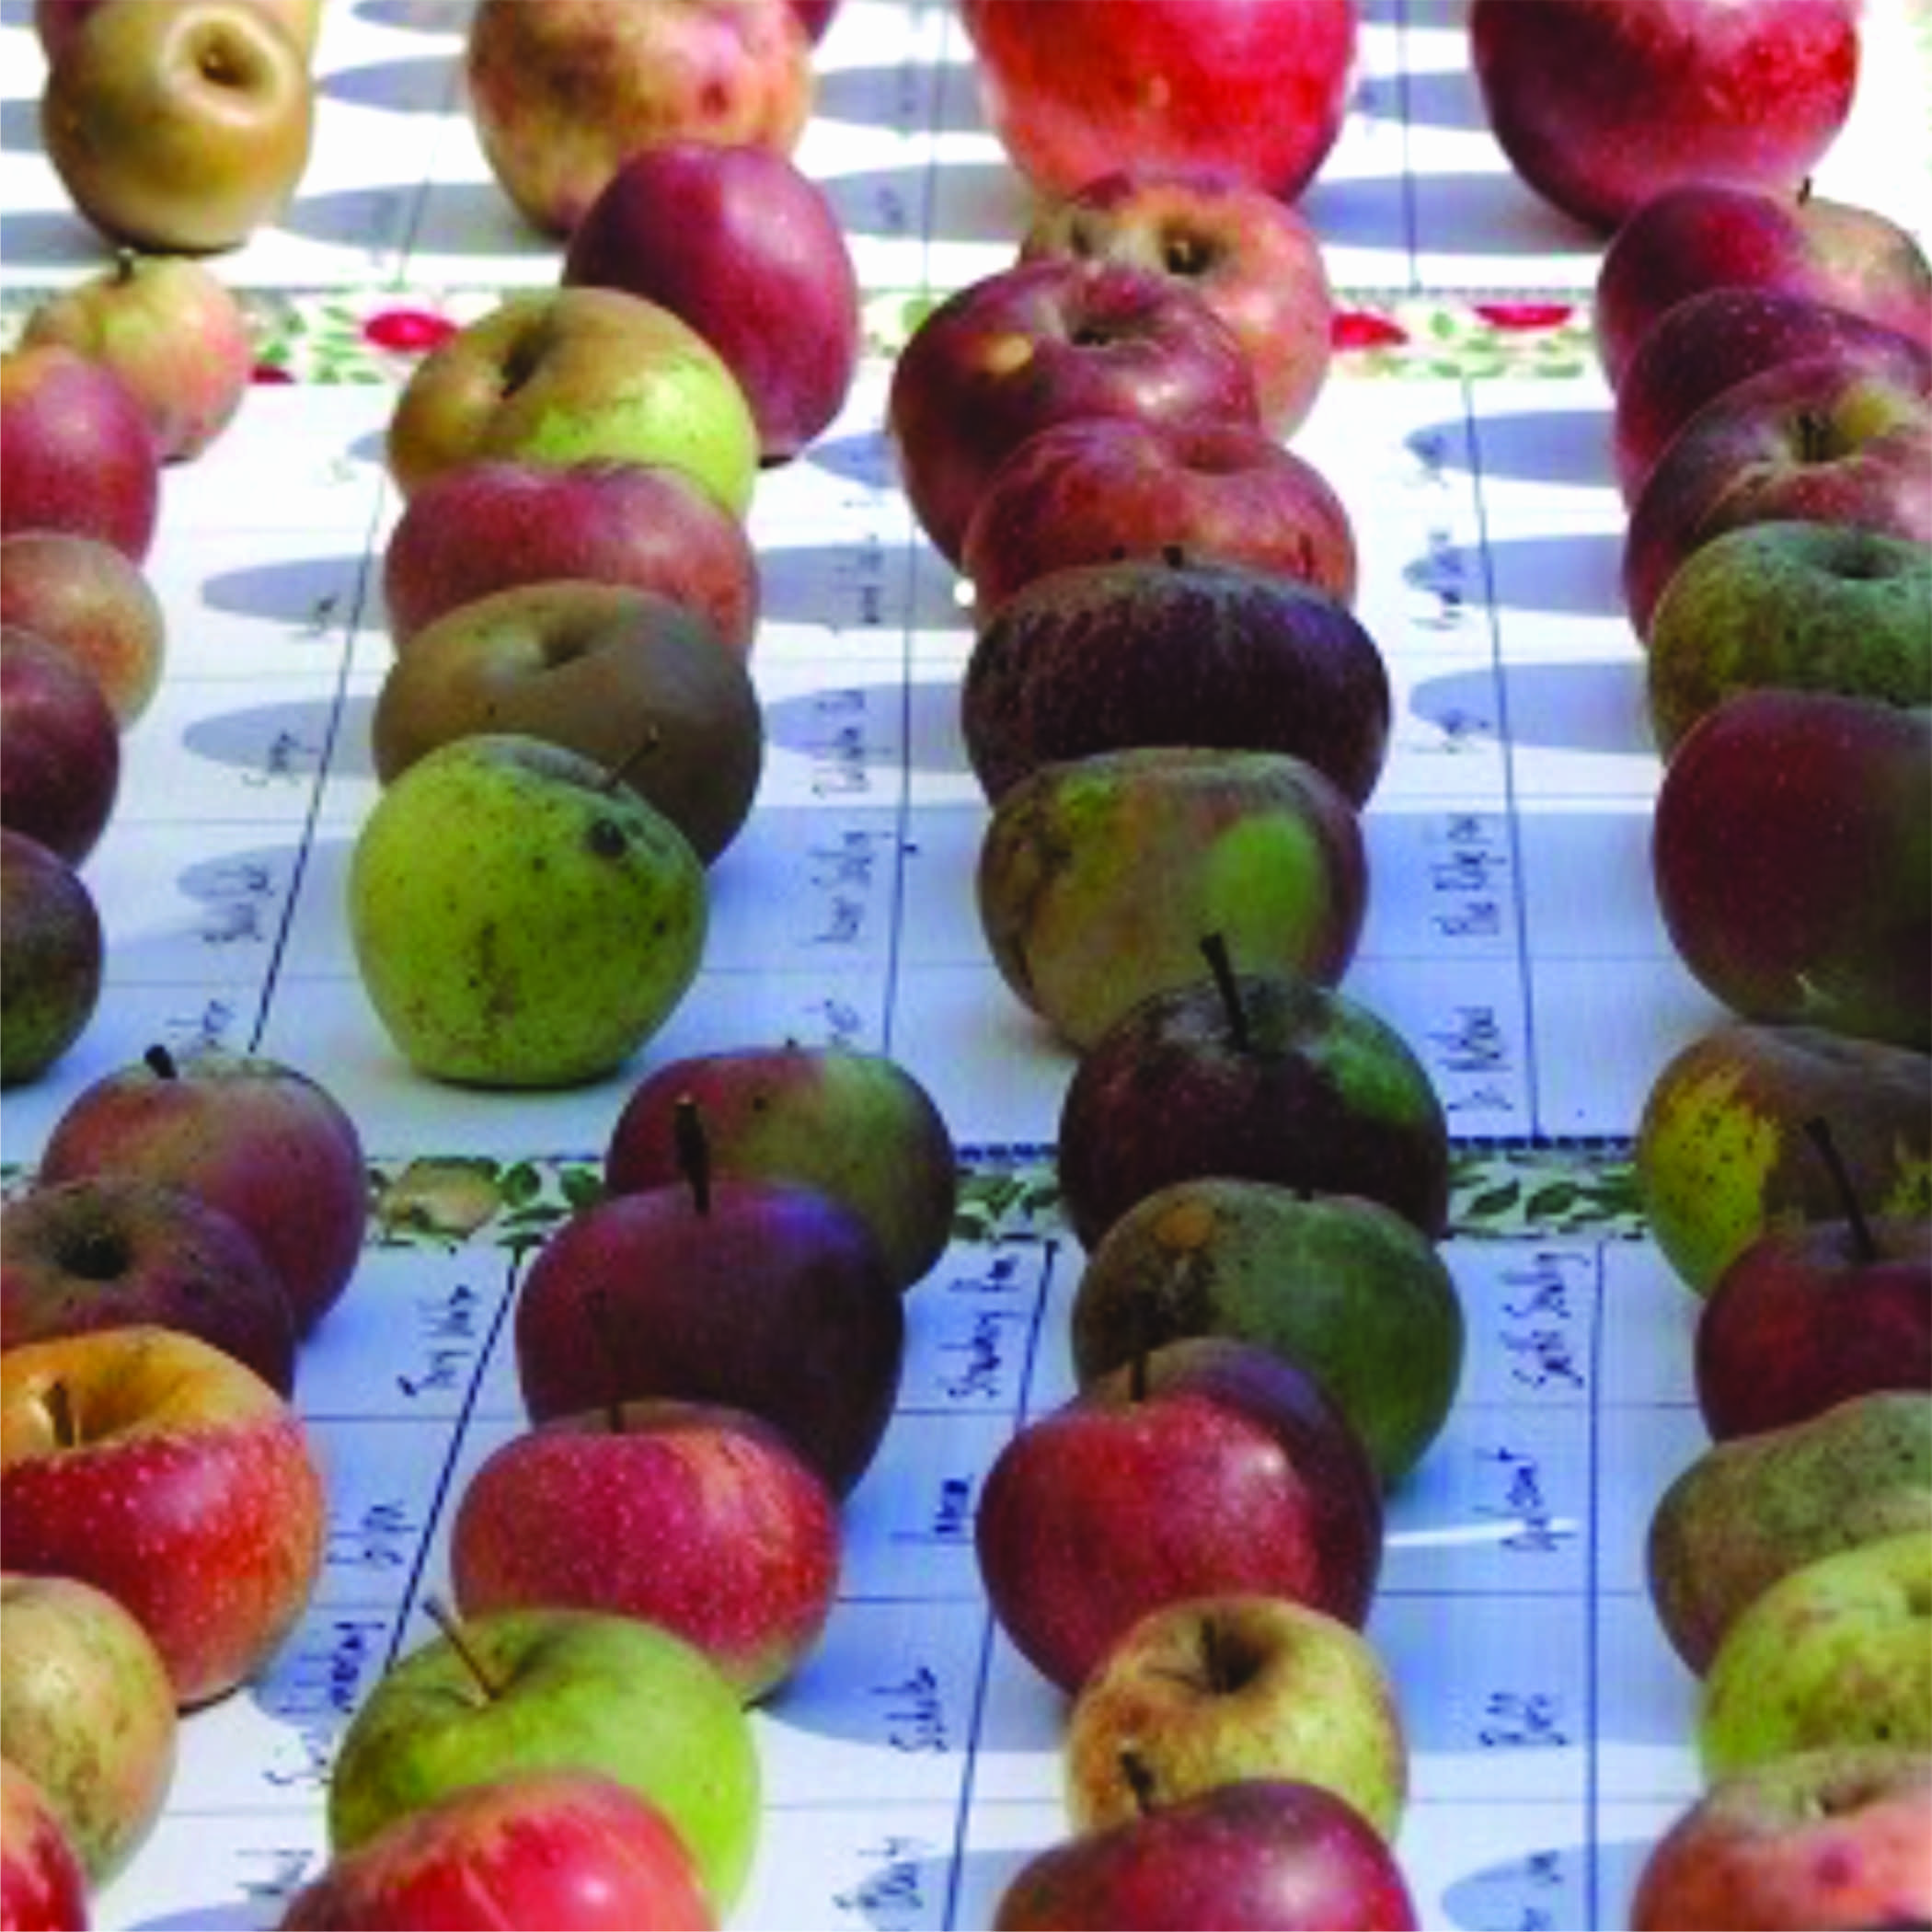 rows of yellow and red apples